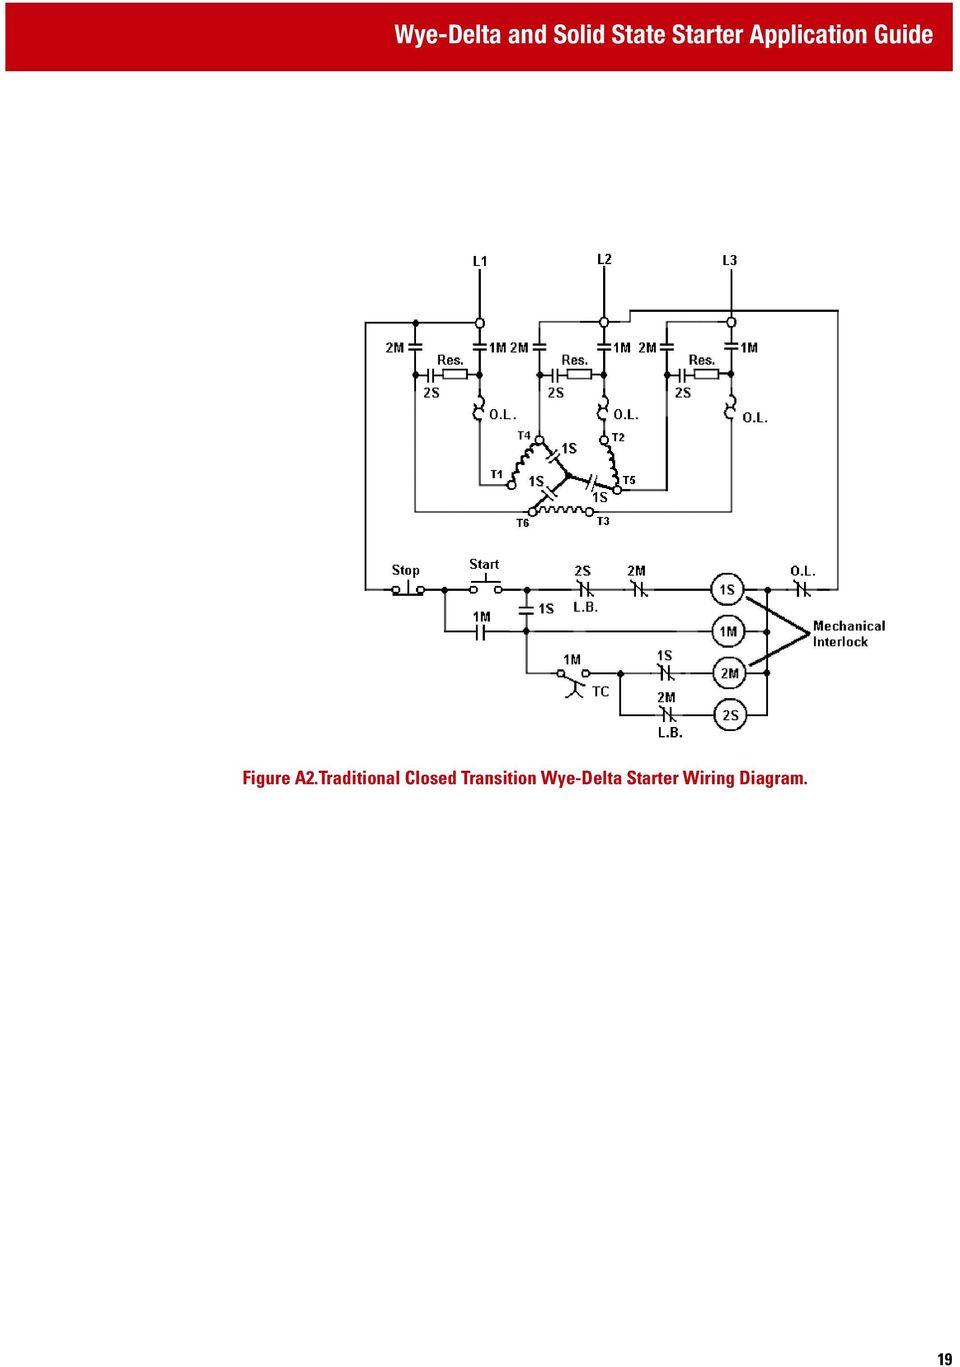 wye delta connection wiring diagram chinese quad bike and solid state starter application guide pdf traditional closed transition 19